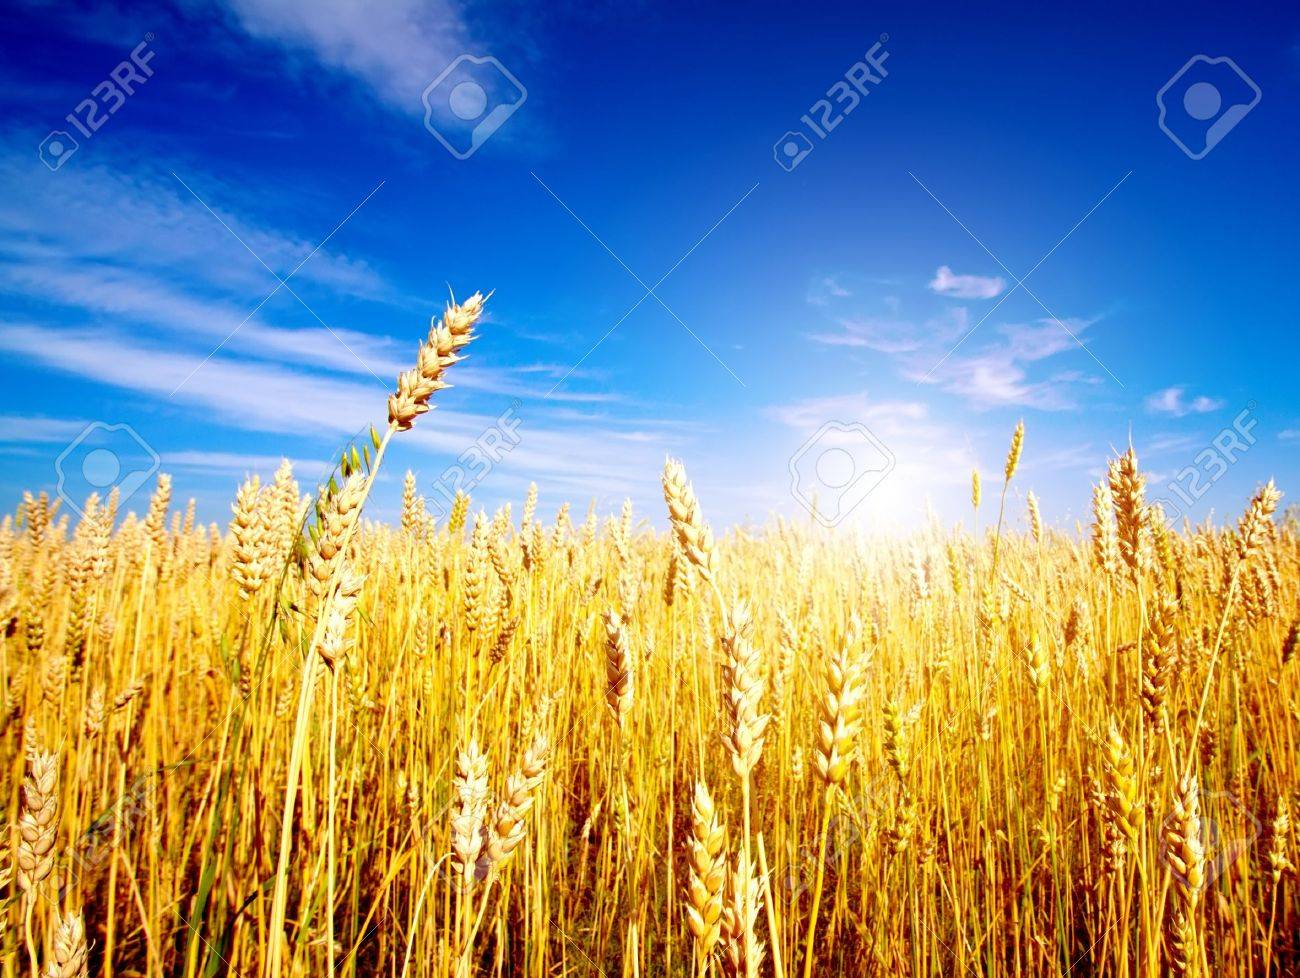 Golden wheat field with blue sky in background Stock Photo - 9088131